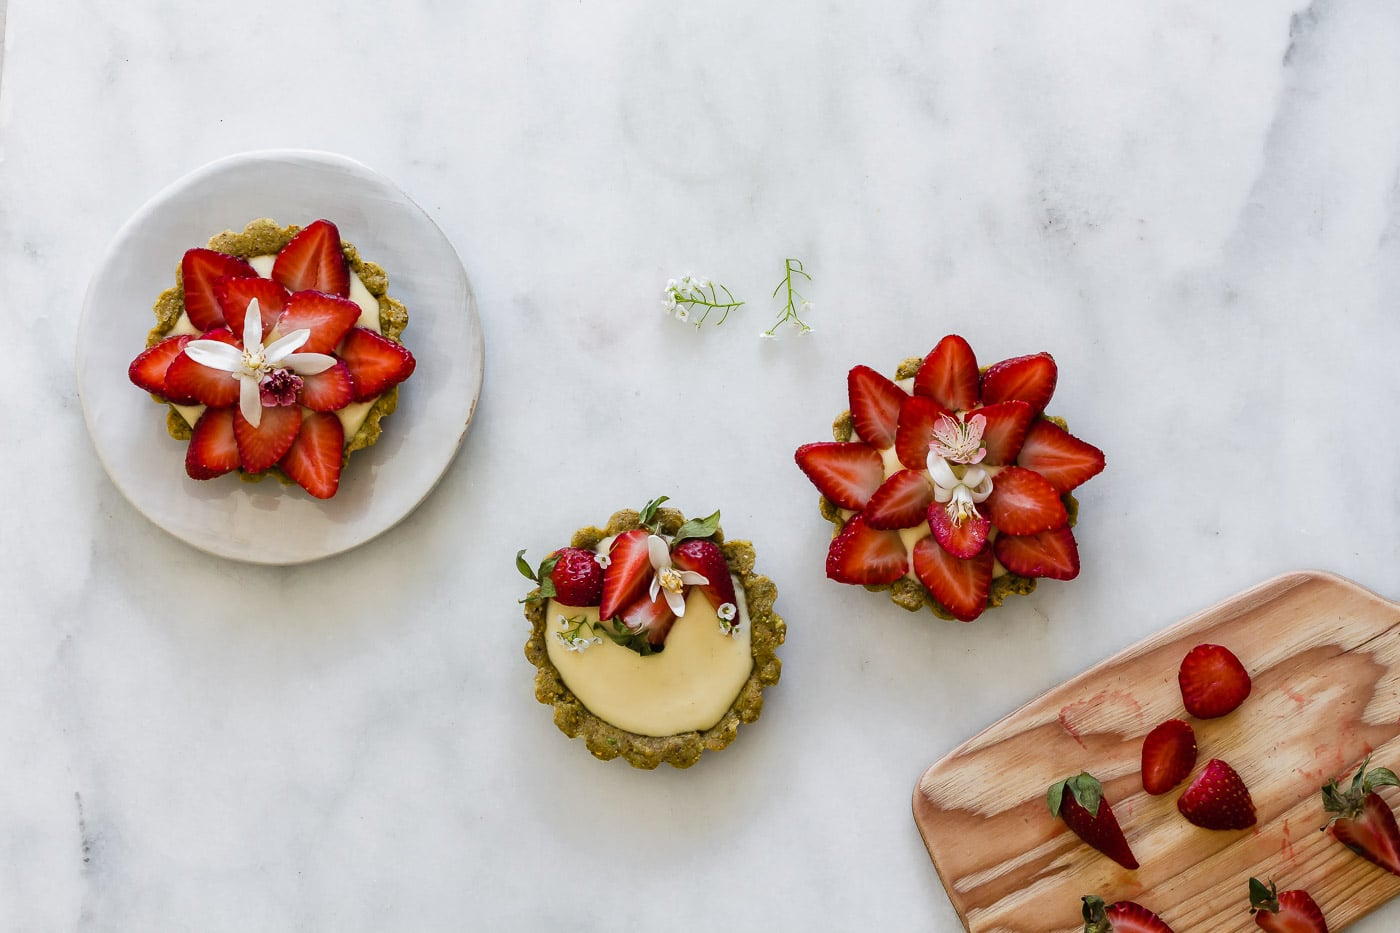 Gluten-free Pistachio Strawberry Tartlets filled with pastry cream on a marble countertop